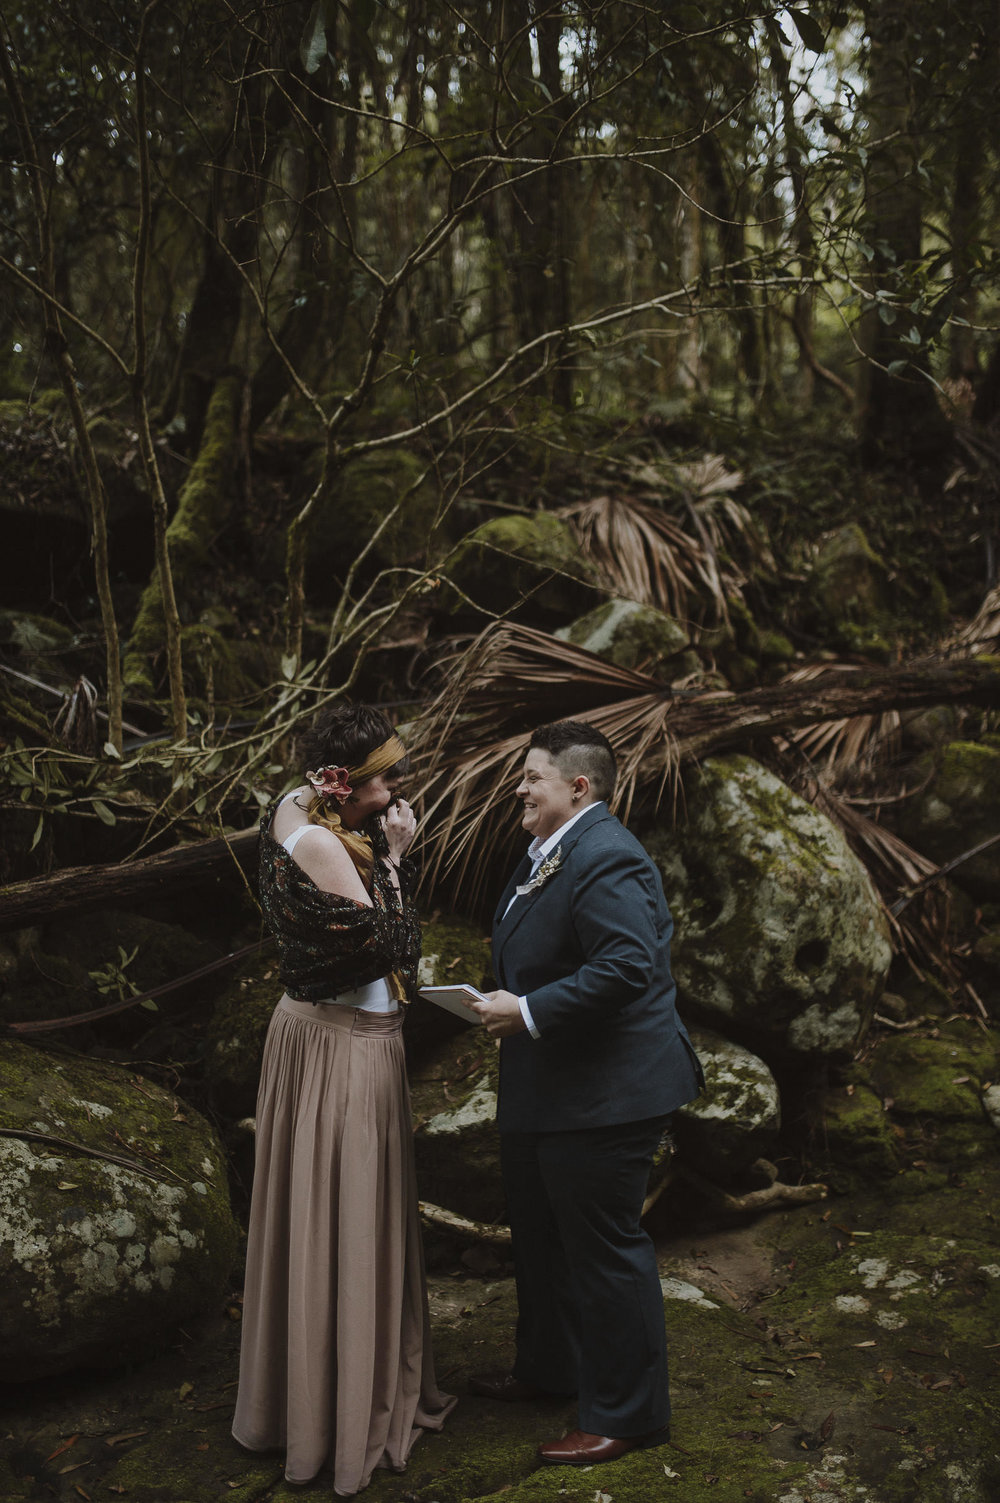 Susan_Remi_Same_Sex_Elopement_Anteloping_Kangaroo_Valley_Blog-41.jpg